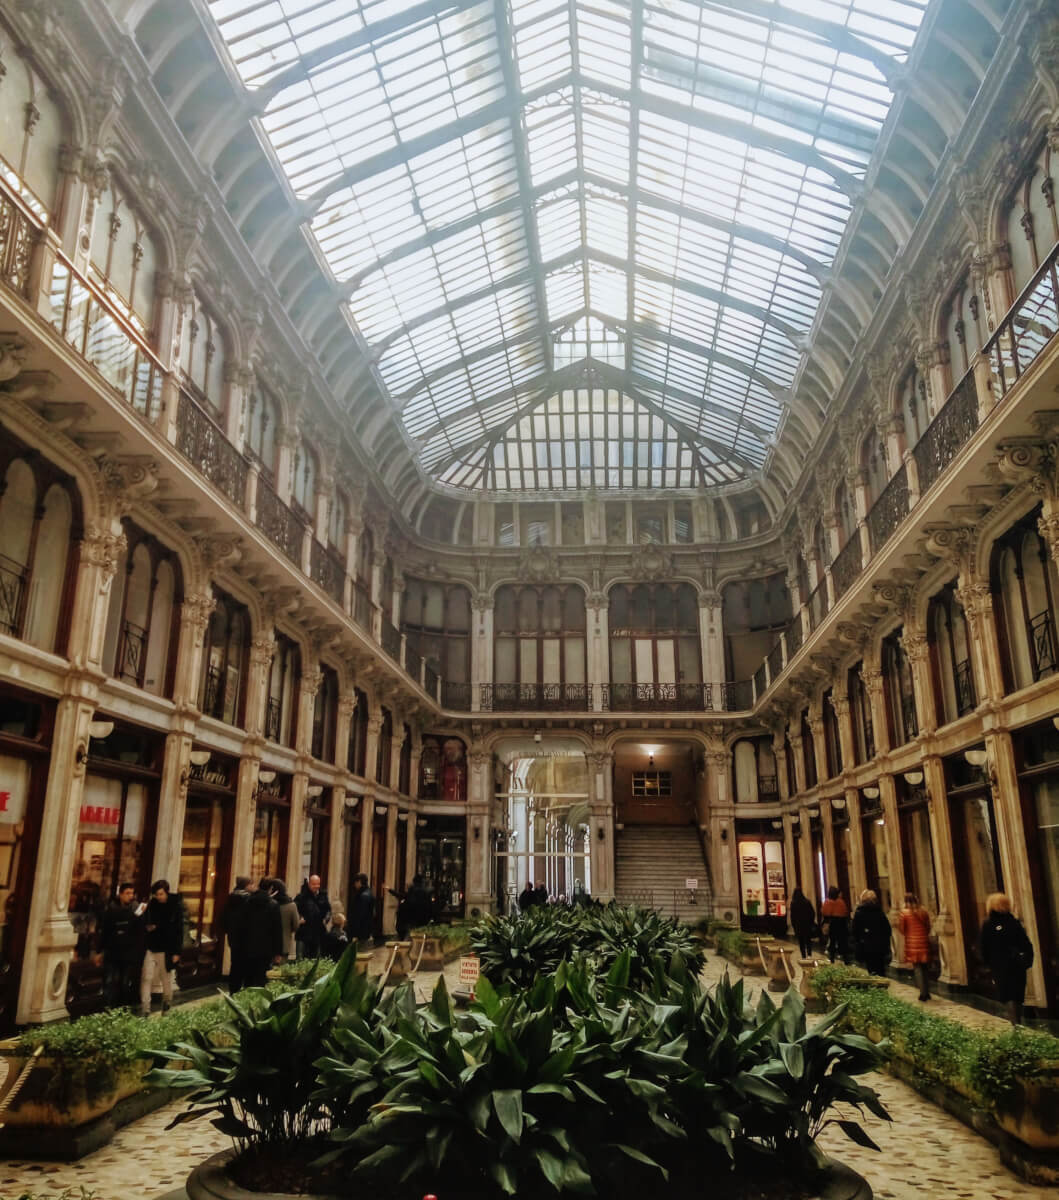 Gallery in Turin, Italy